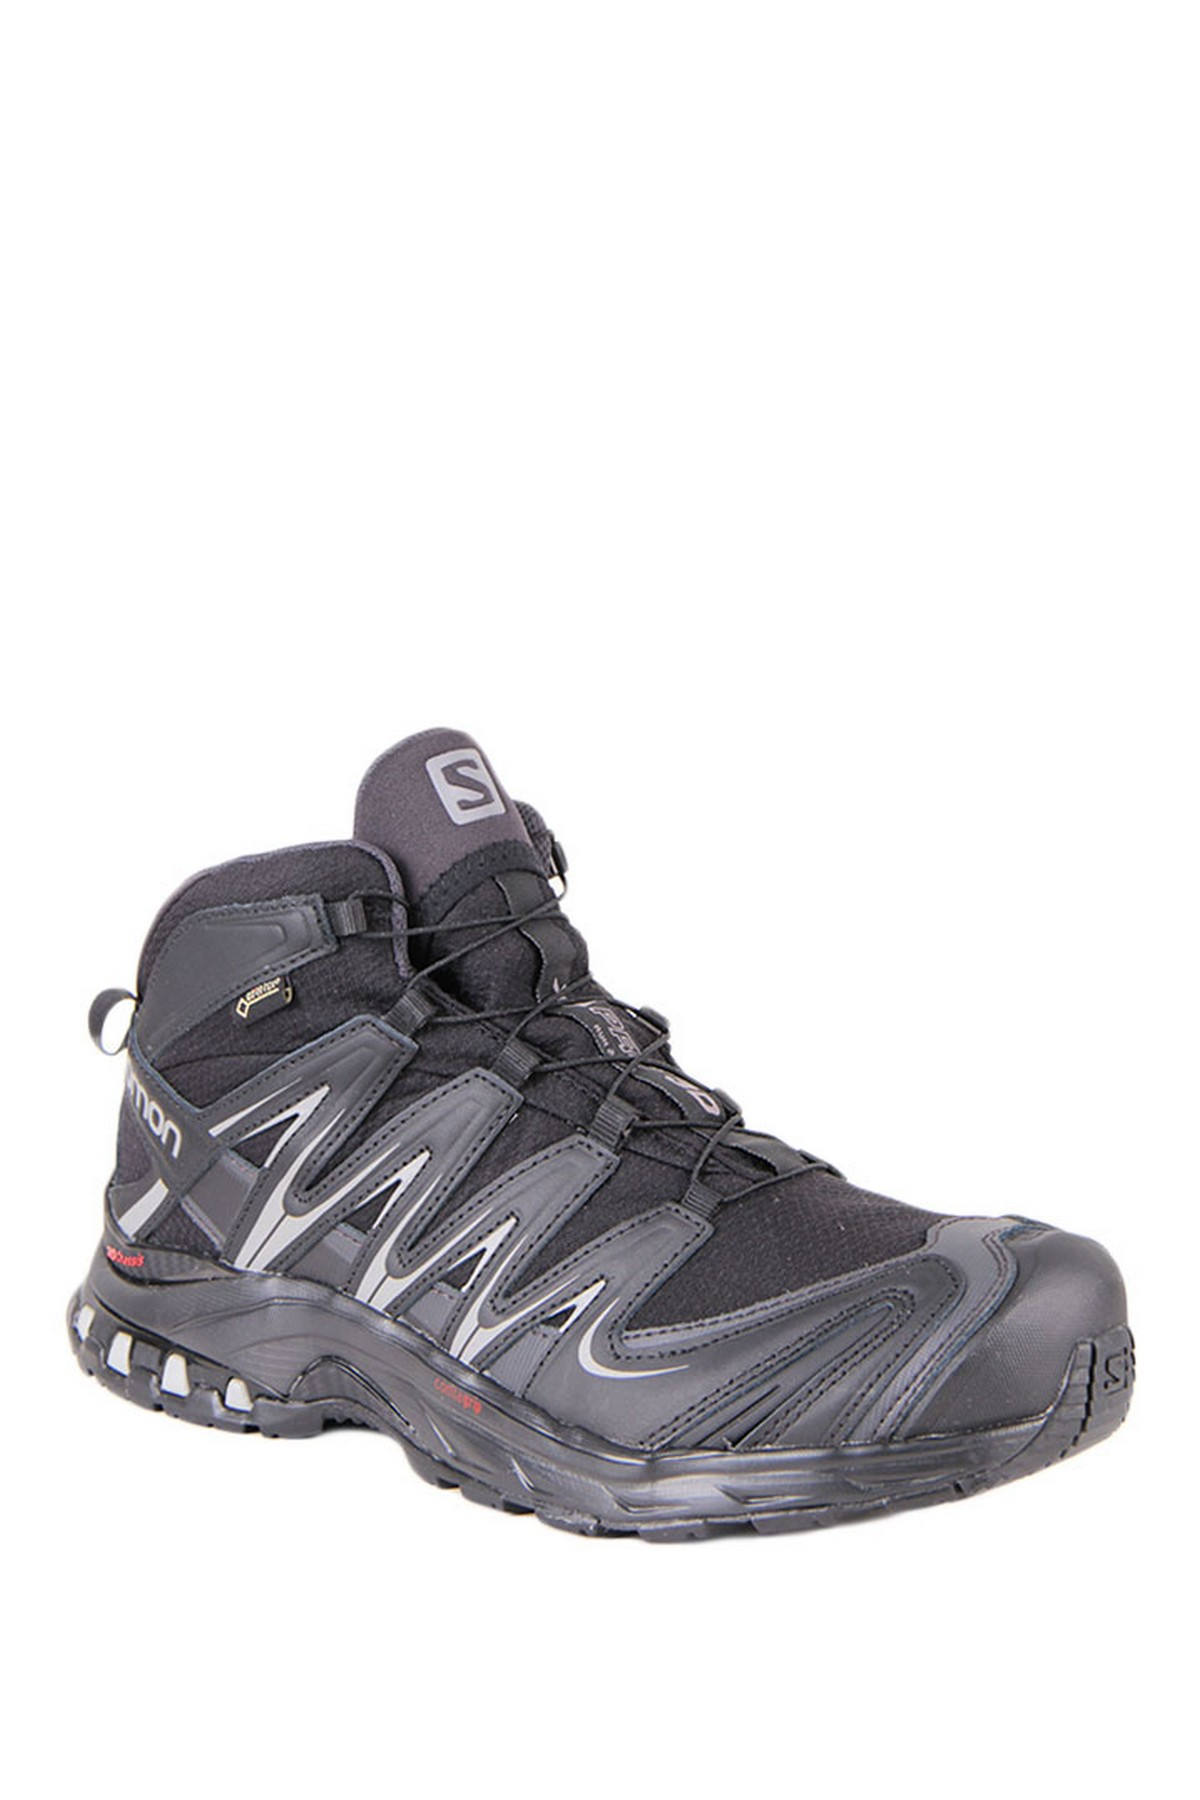 Salomon XA Pro MD GTX Outdoor Ayakkabı (L36678000)